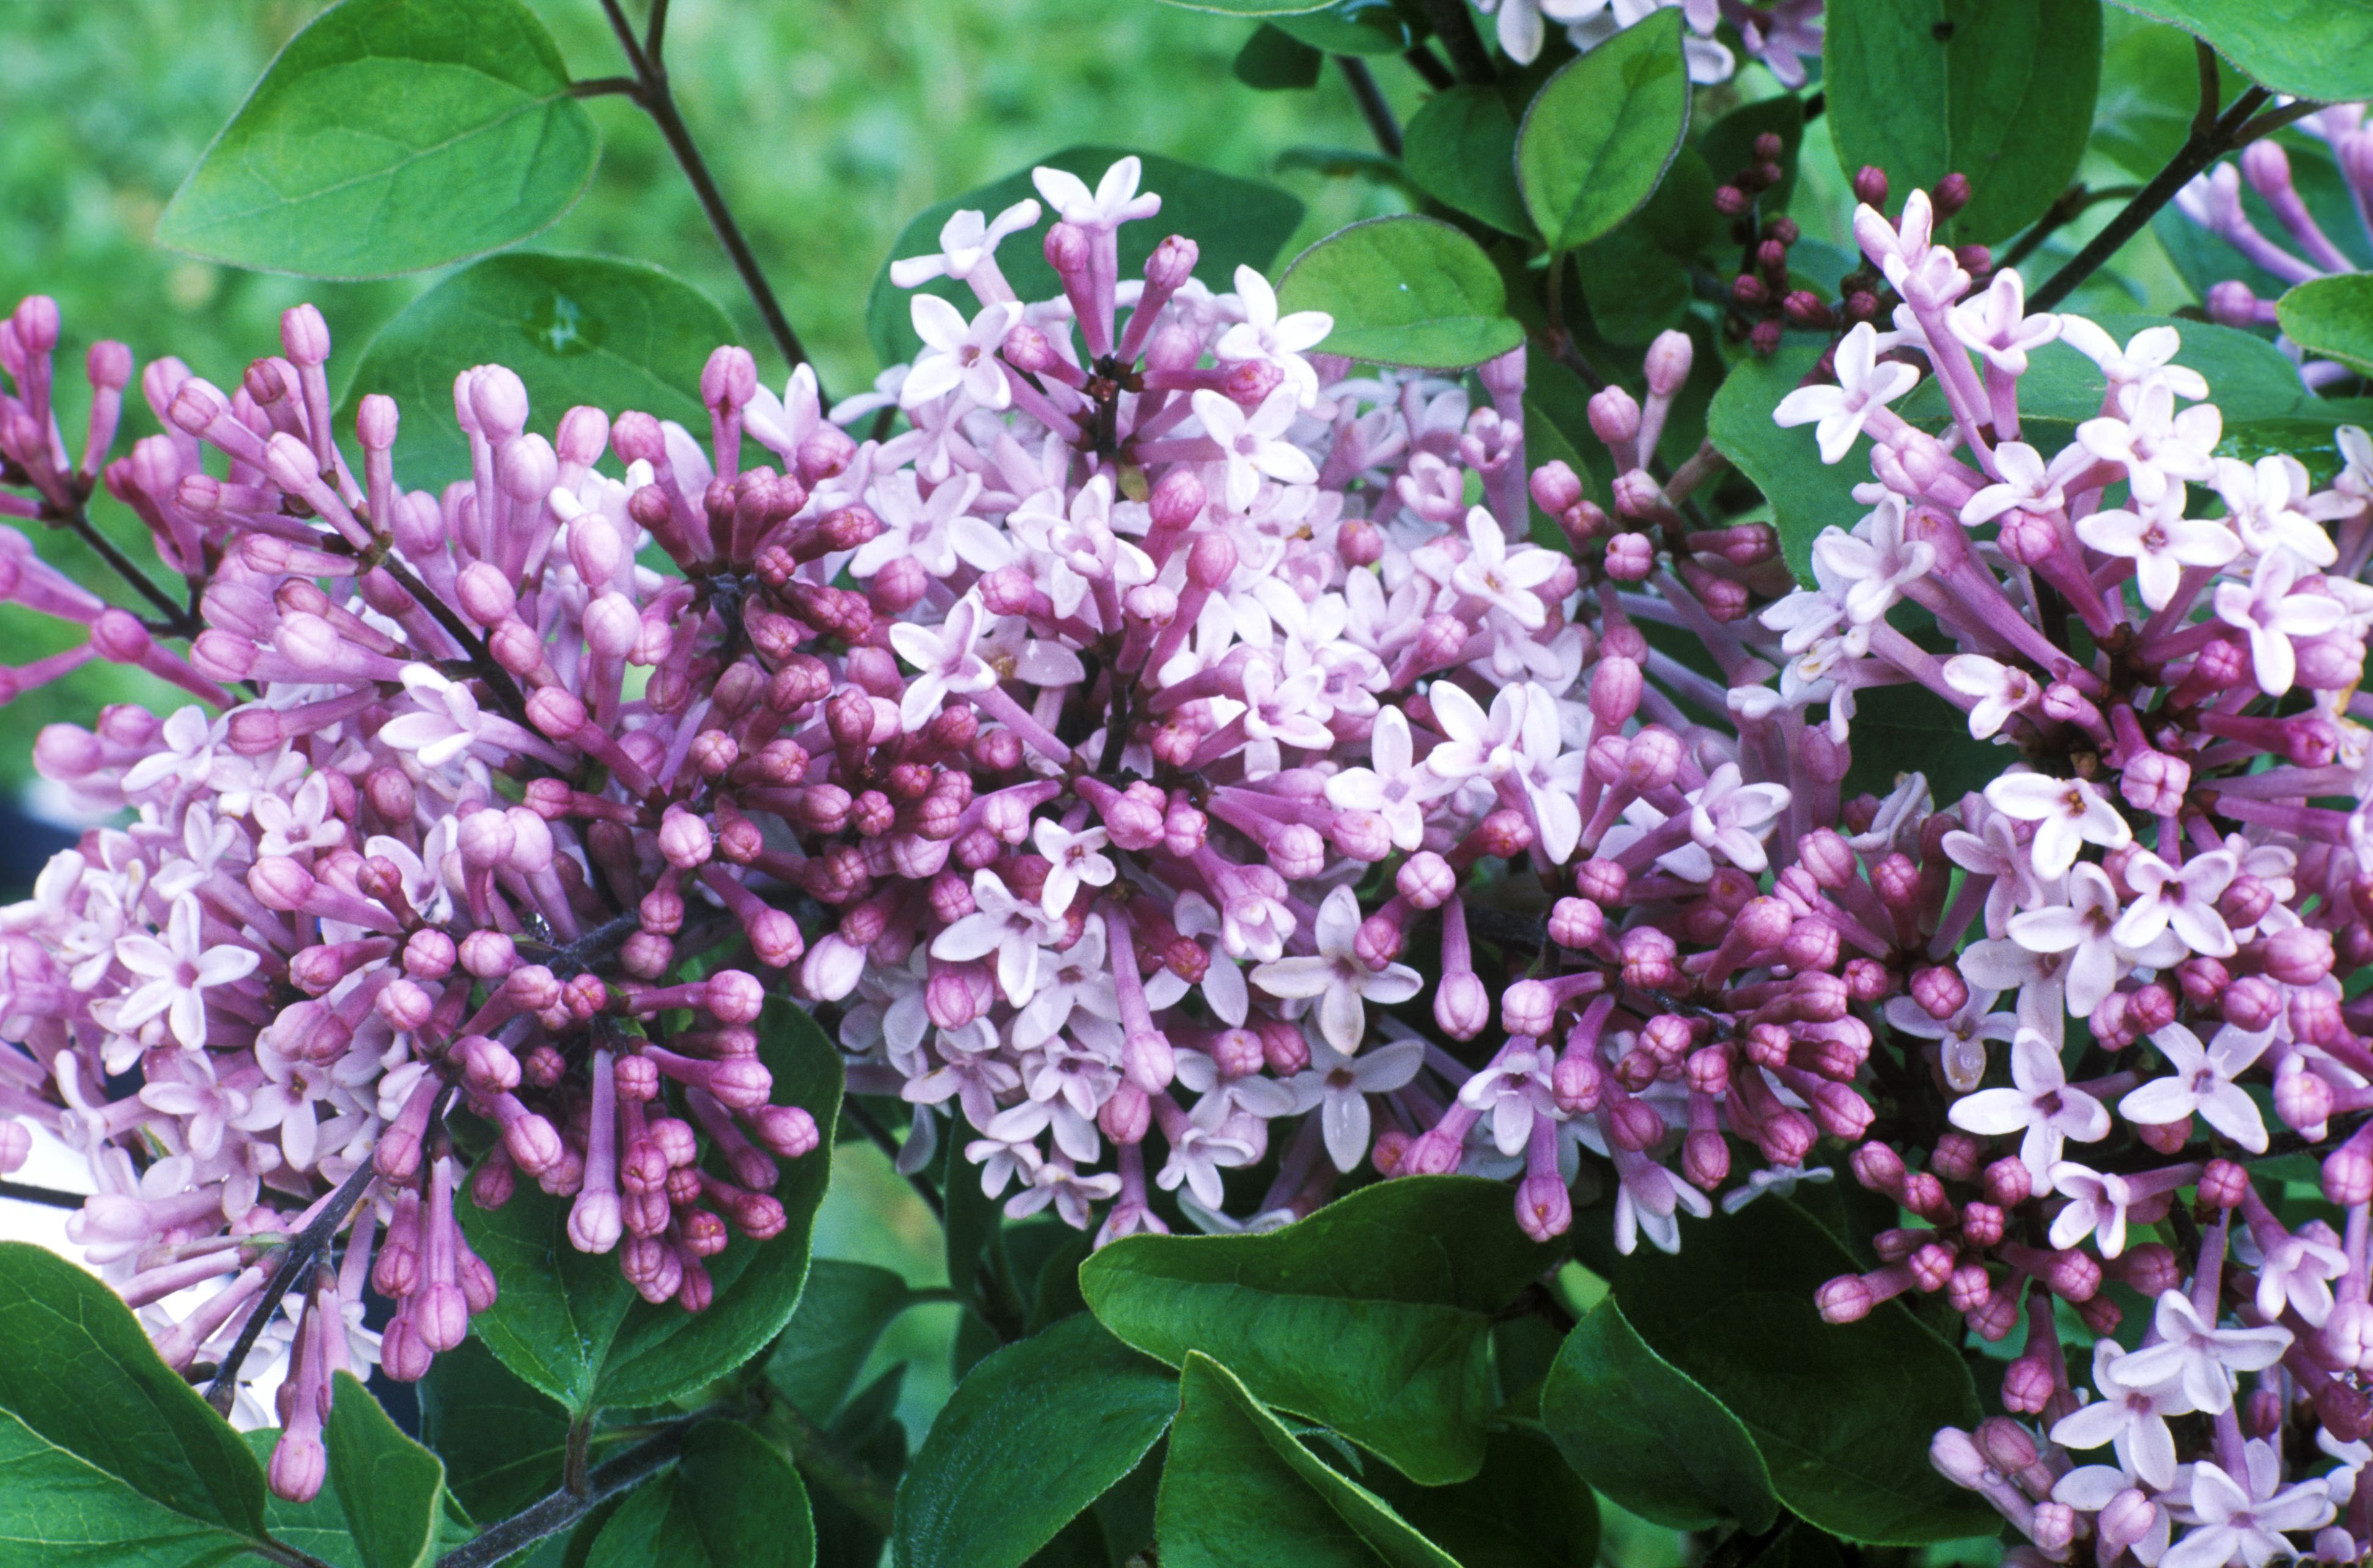 The Palabin lilac with purple flowers